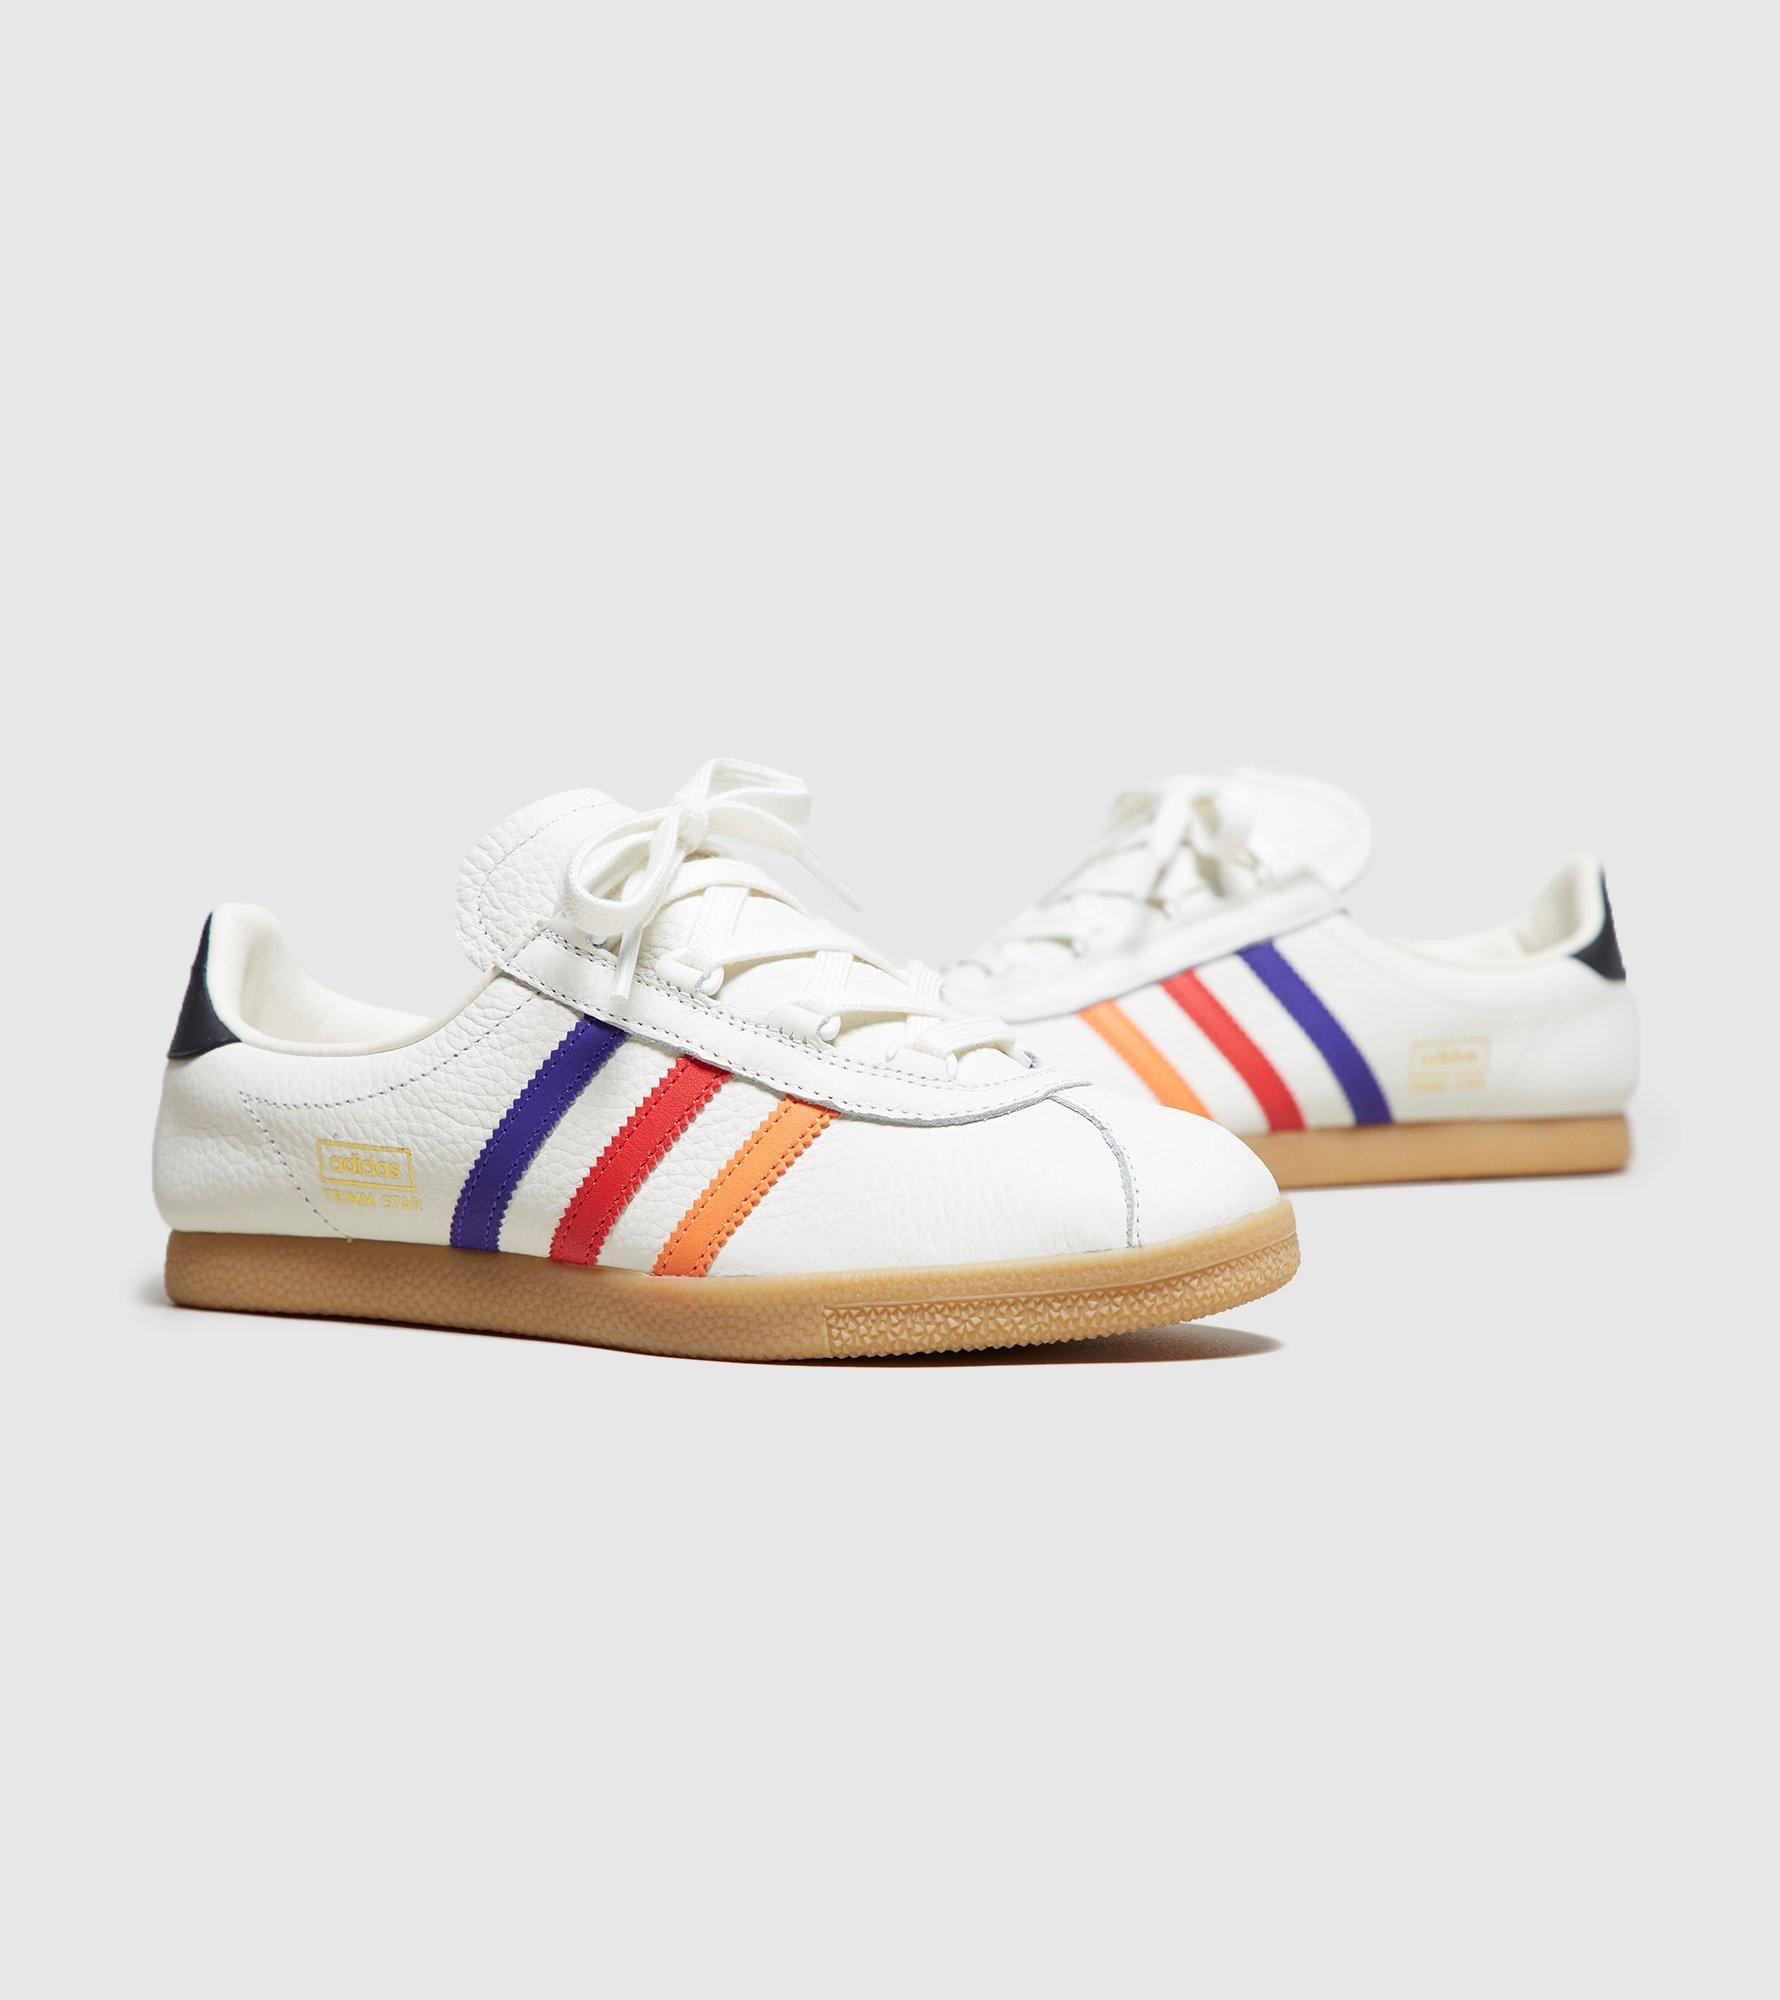 Lyst - adidas Originals Trimm Star  vhs  - Size  Exclusive Women s ... f999aa9f1